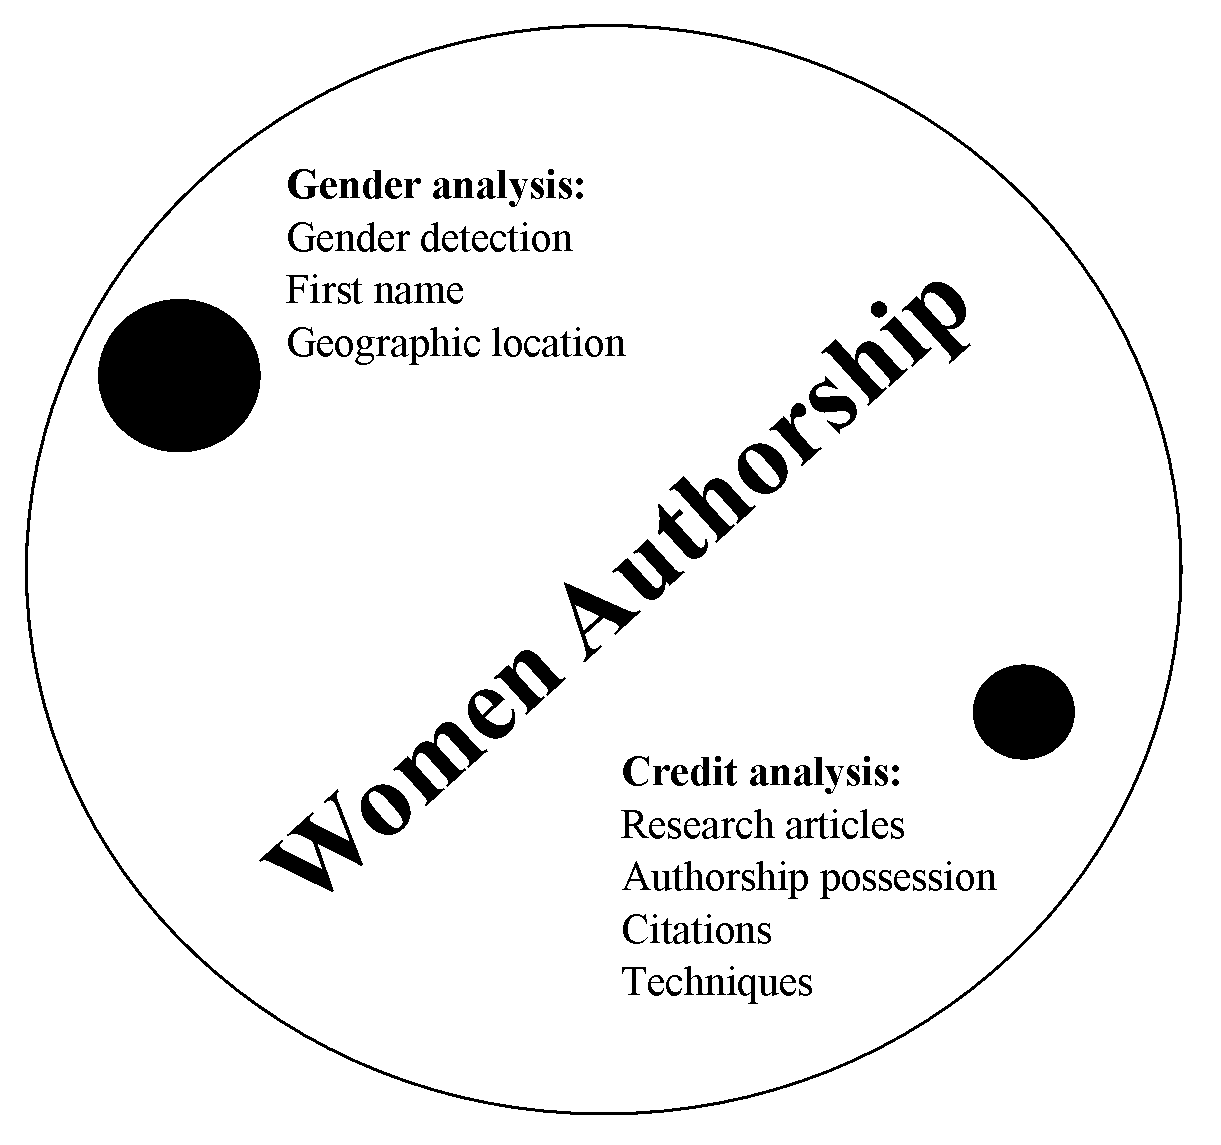 Data and Techniques Used for Analysis of Women Authorship in STEMM: A Review